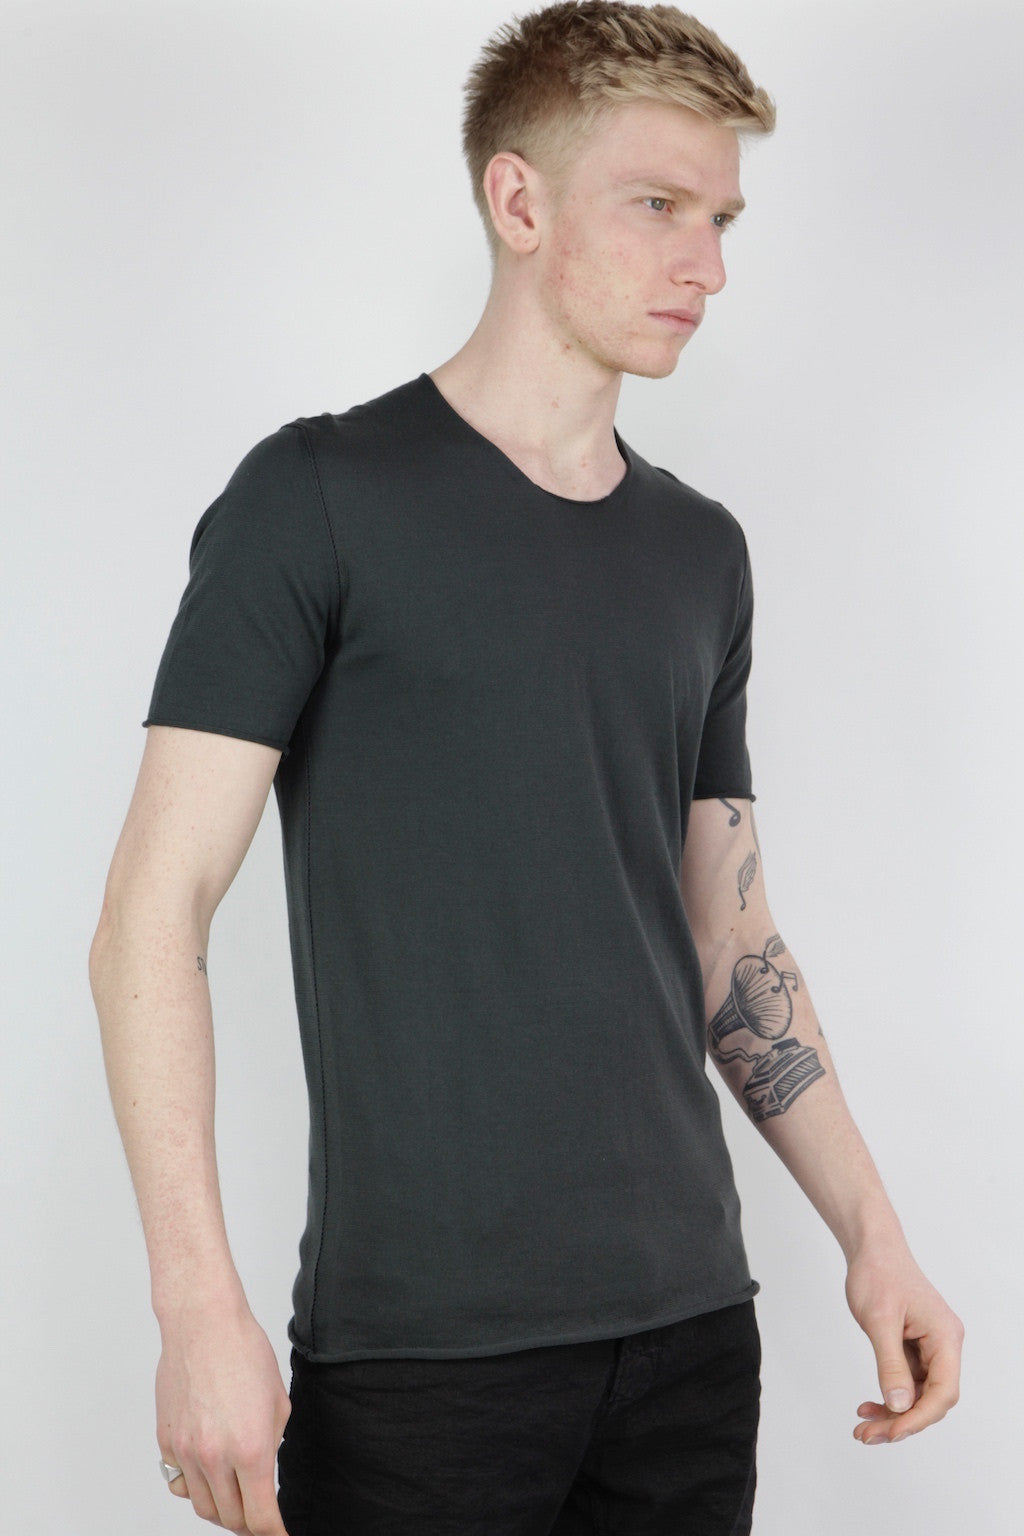 embroidery seam t shirt